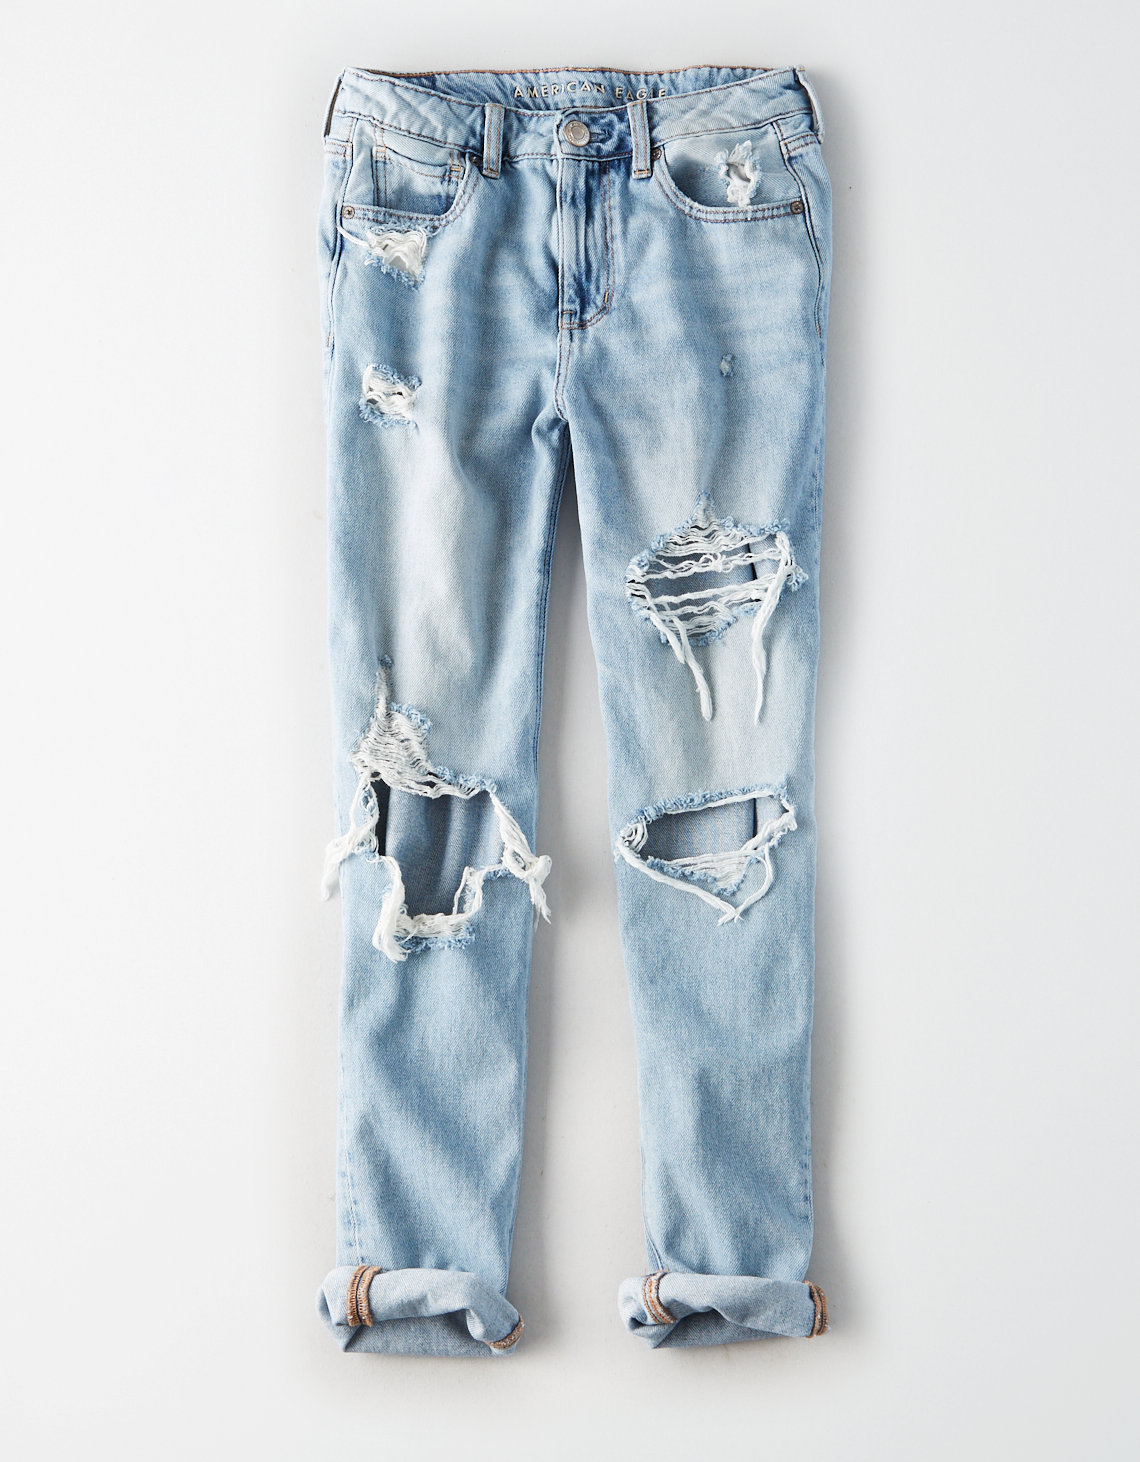 AMERICAN EAGLE AE HIGH-WAISTED TOMGIRL JEAN